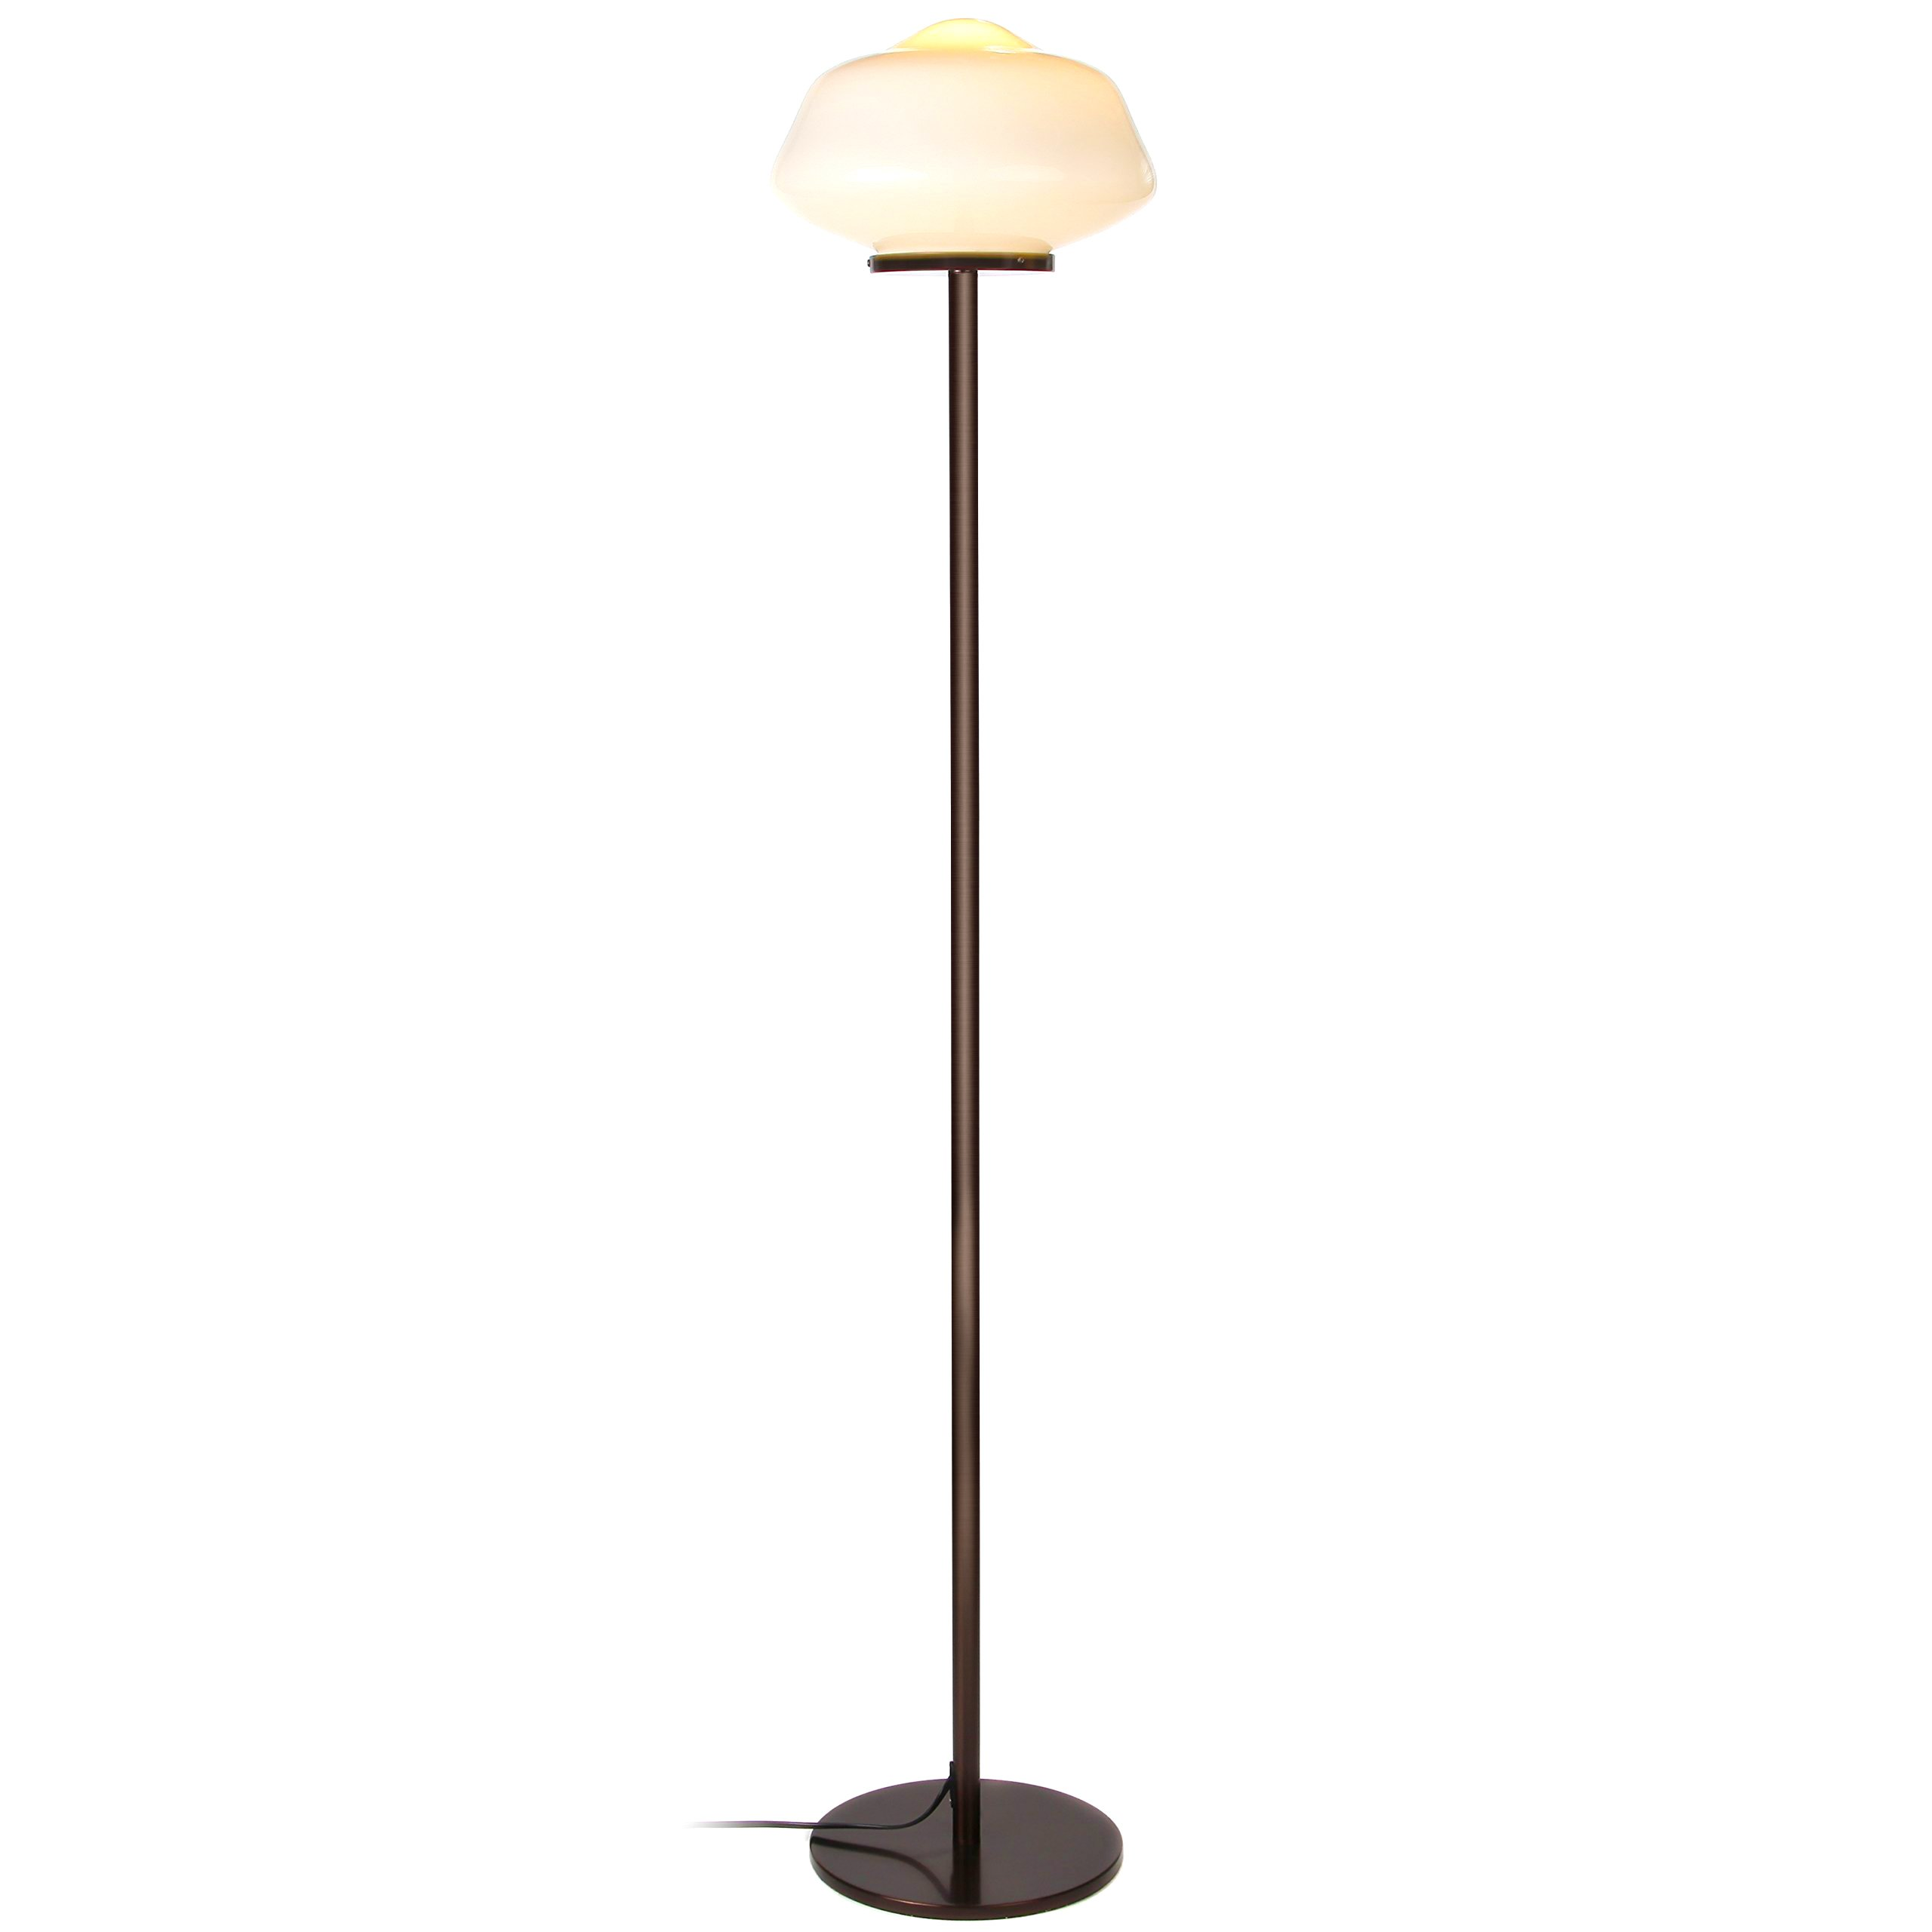 Brightech Aiden LED Floor Lamp– Contemporary Modern Frosted Glass Globe Lamp- Tall Pole Standing Uplight Lamp for Living Room, Den Office or Bedroom- Energy Efficient Bulb Included - Bronze by Brightech